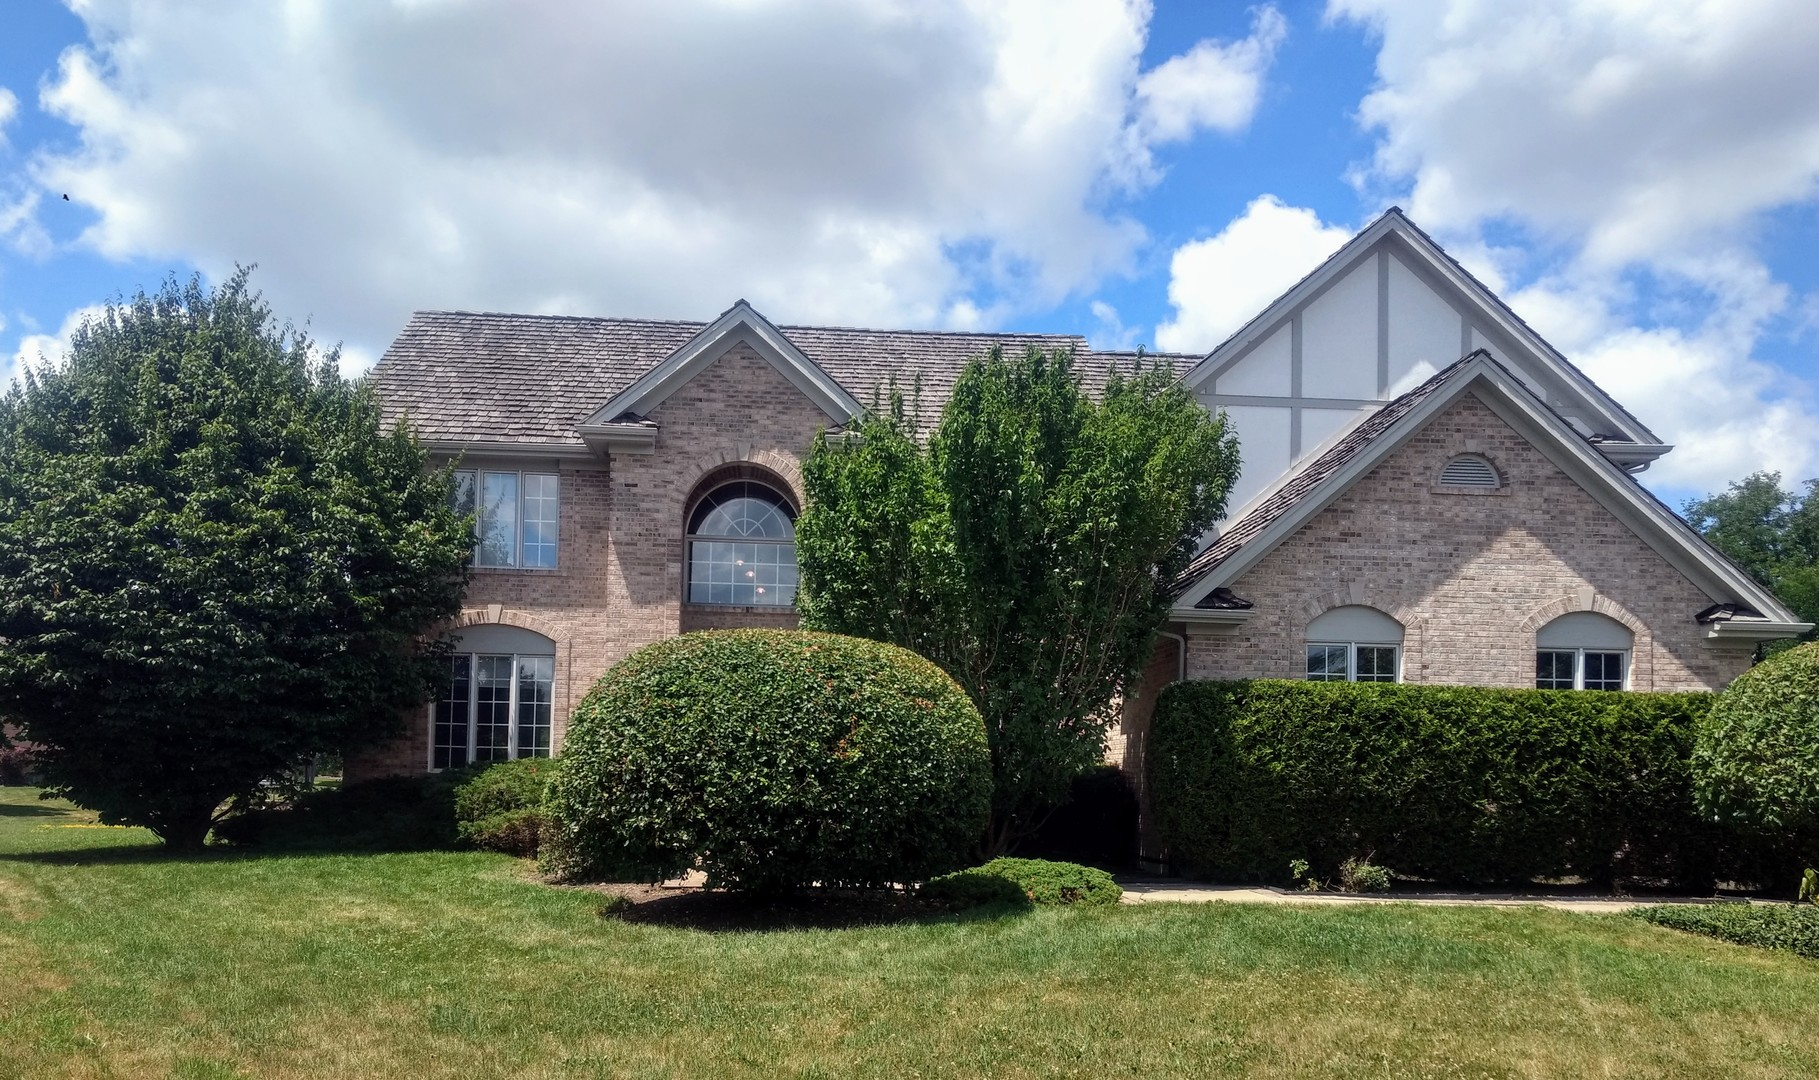 Property for sale at 305 Cobblestone Court, Lake In The Hills,  Il 60156